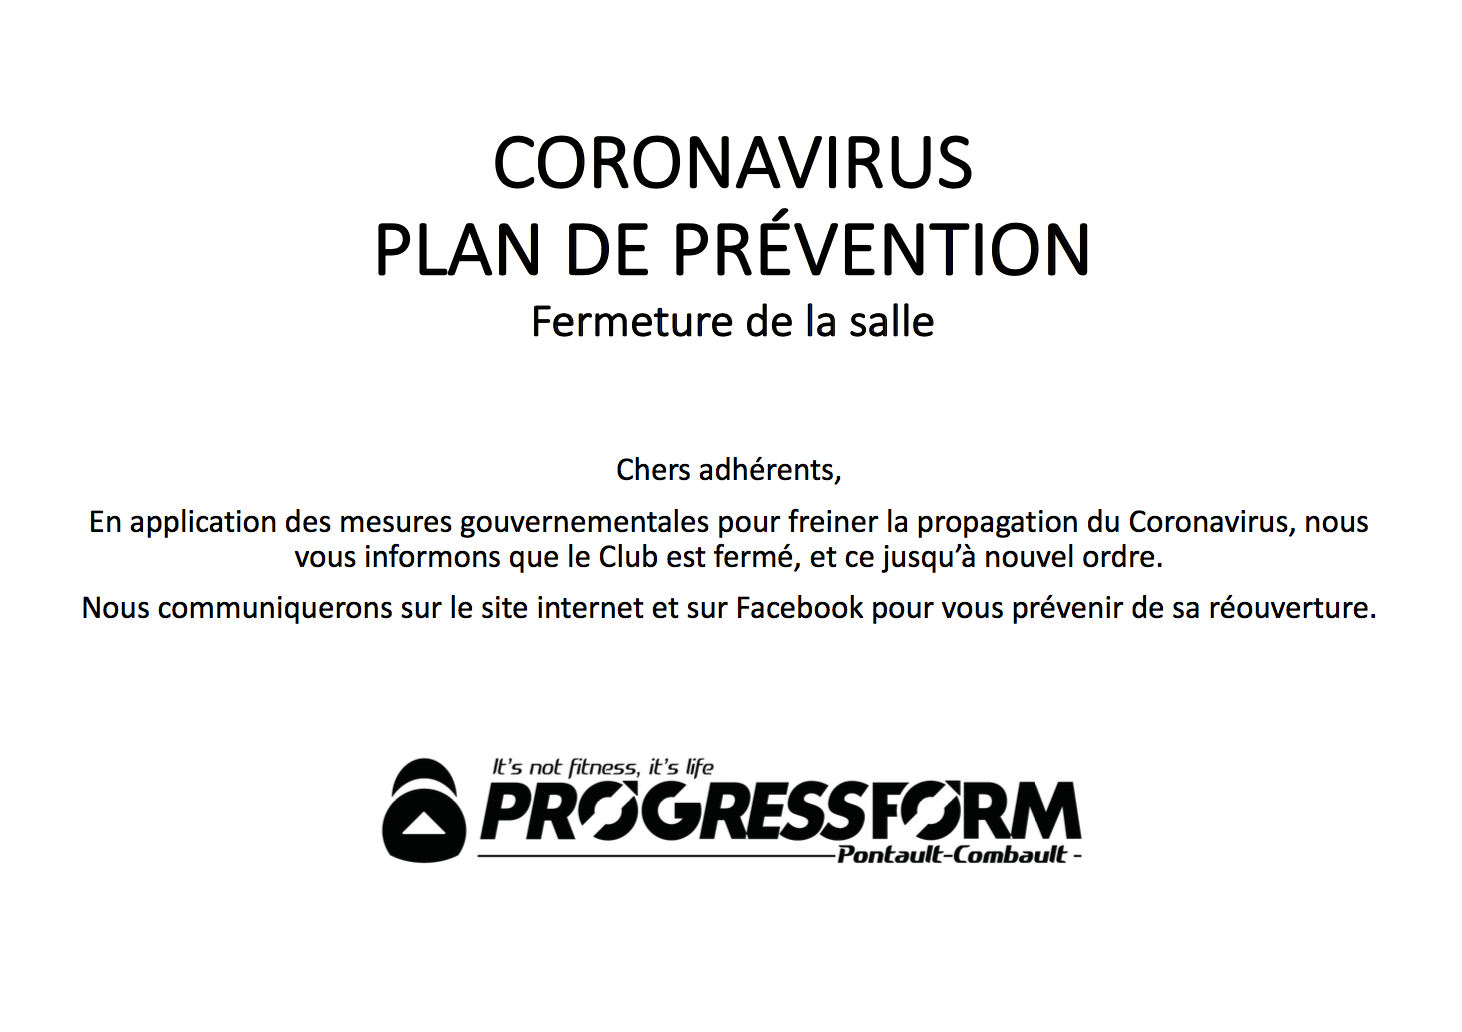 Bienvenue Chez Progress Form A Pontault Combault